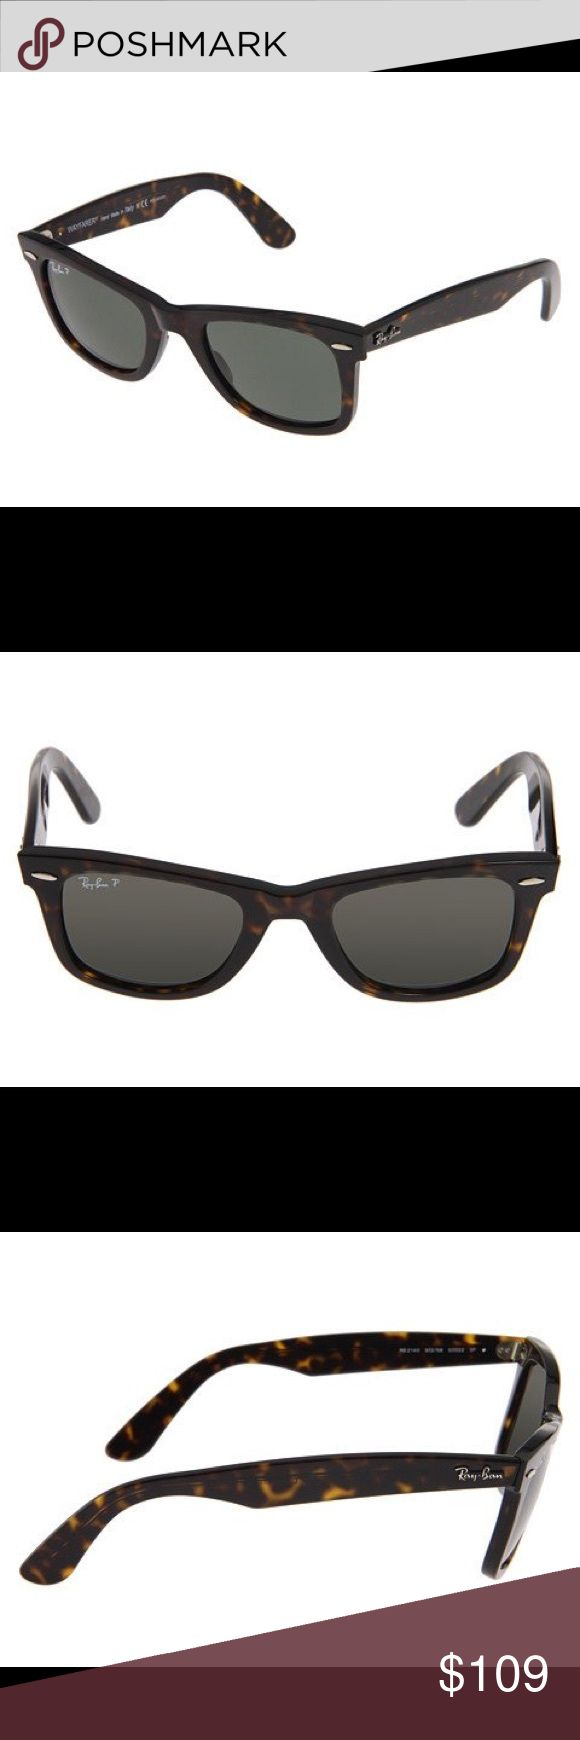 Authentic Ray Ban Wayfarer Sunglasses RB2140 New Stylish Ray Ban wayfarer sunglassss in distressed Tortoise. Sure to please. Price is firm. Ray-Ban Accessories Sunglasses